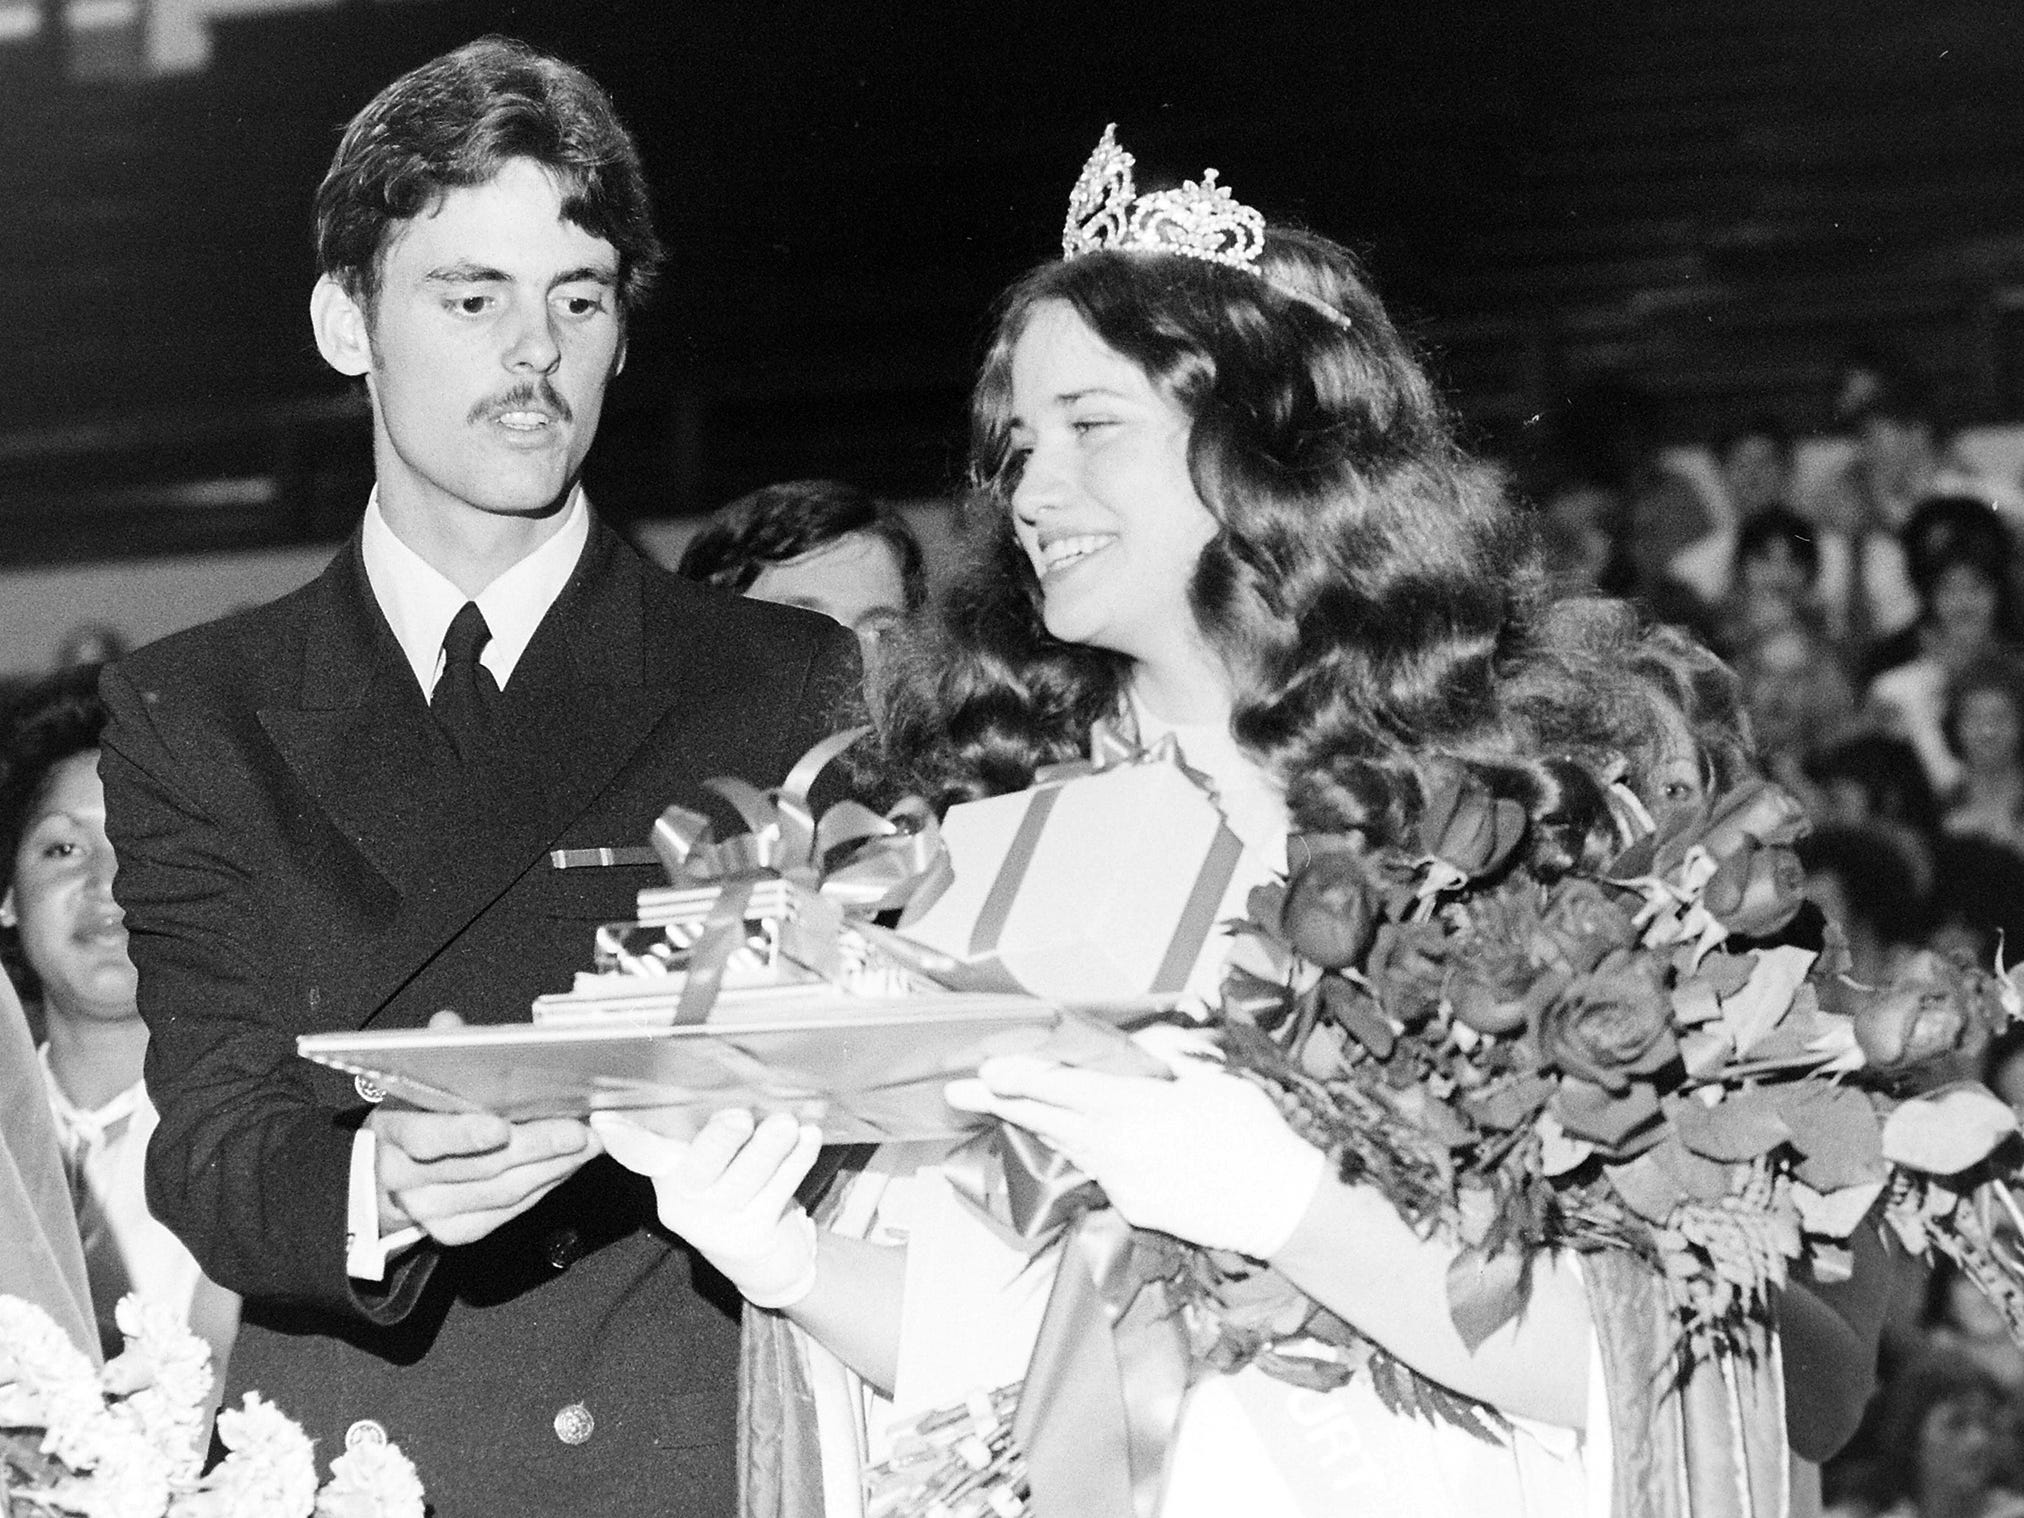 05/1/77